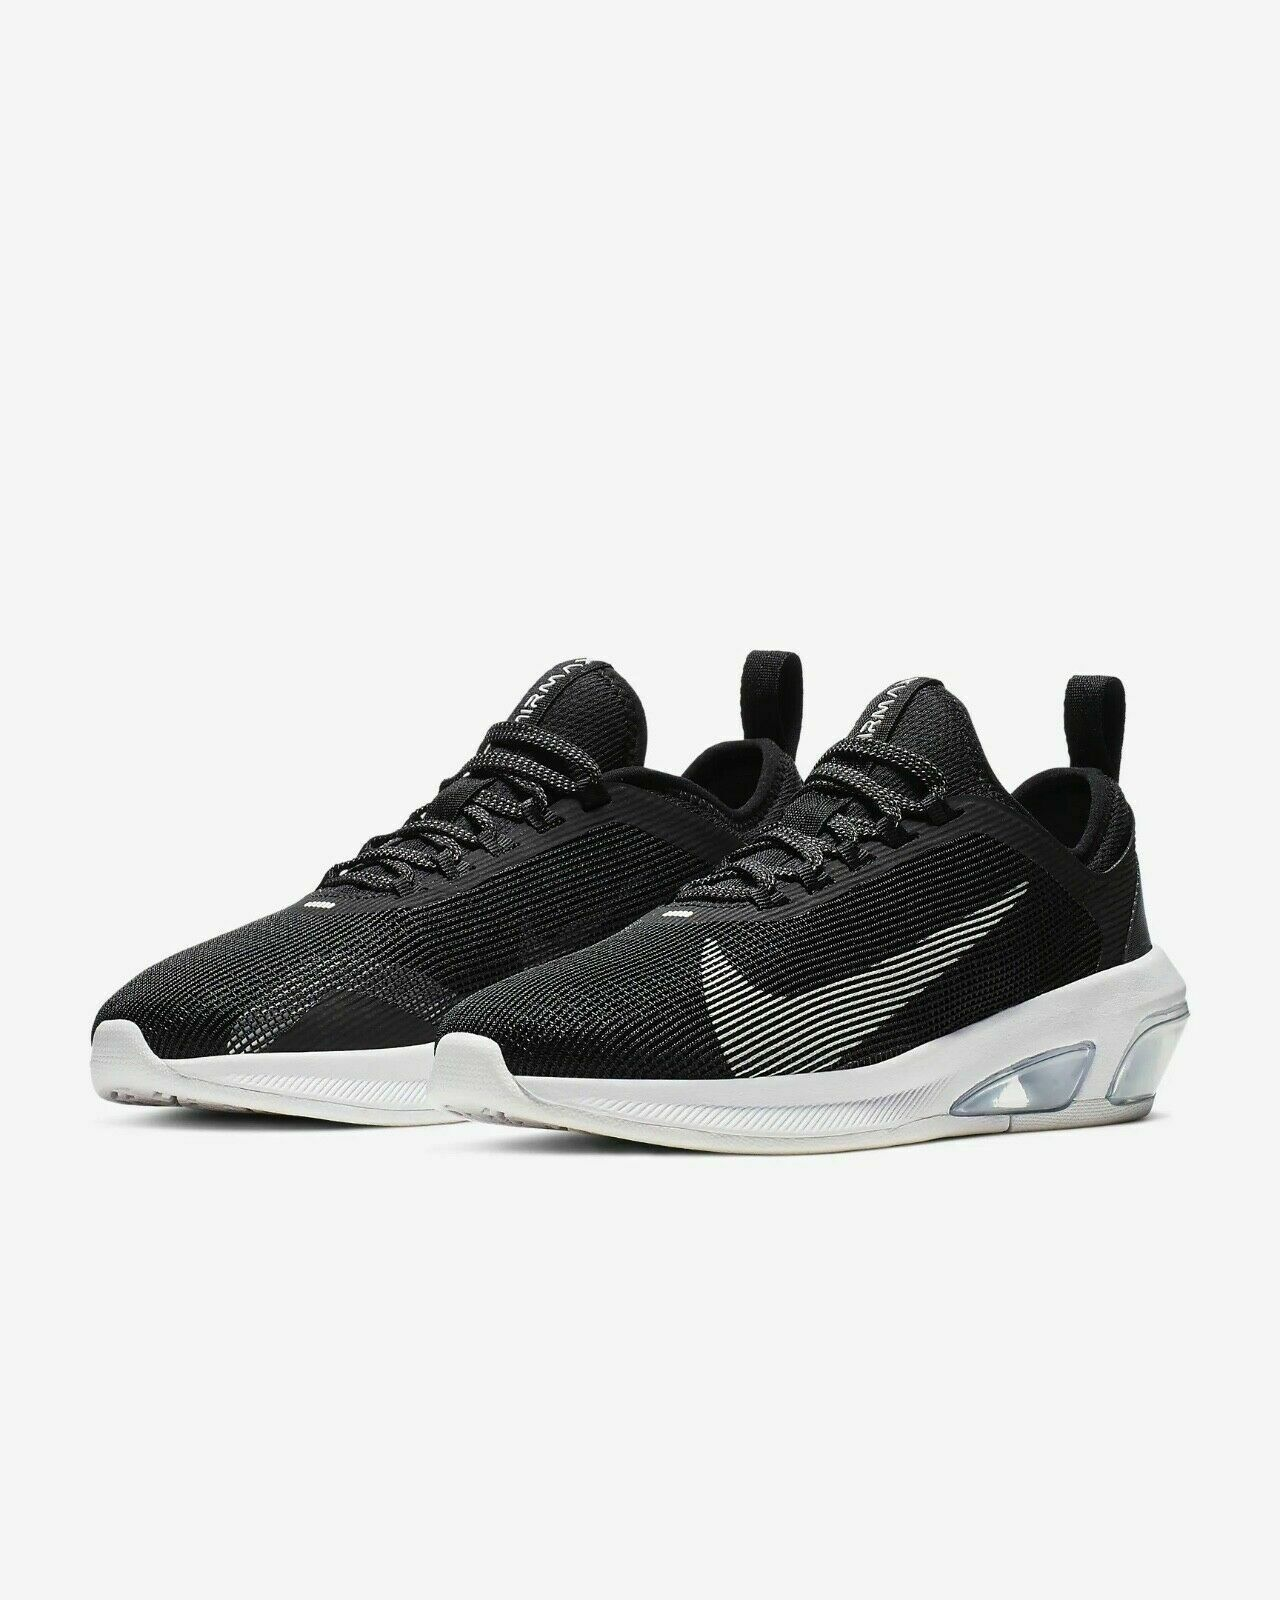 Nike Air Max Fly AT2506-002 Black White Wolf Grey Men's Running Lifestyle Shoes